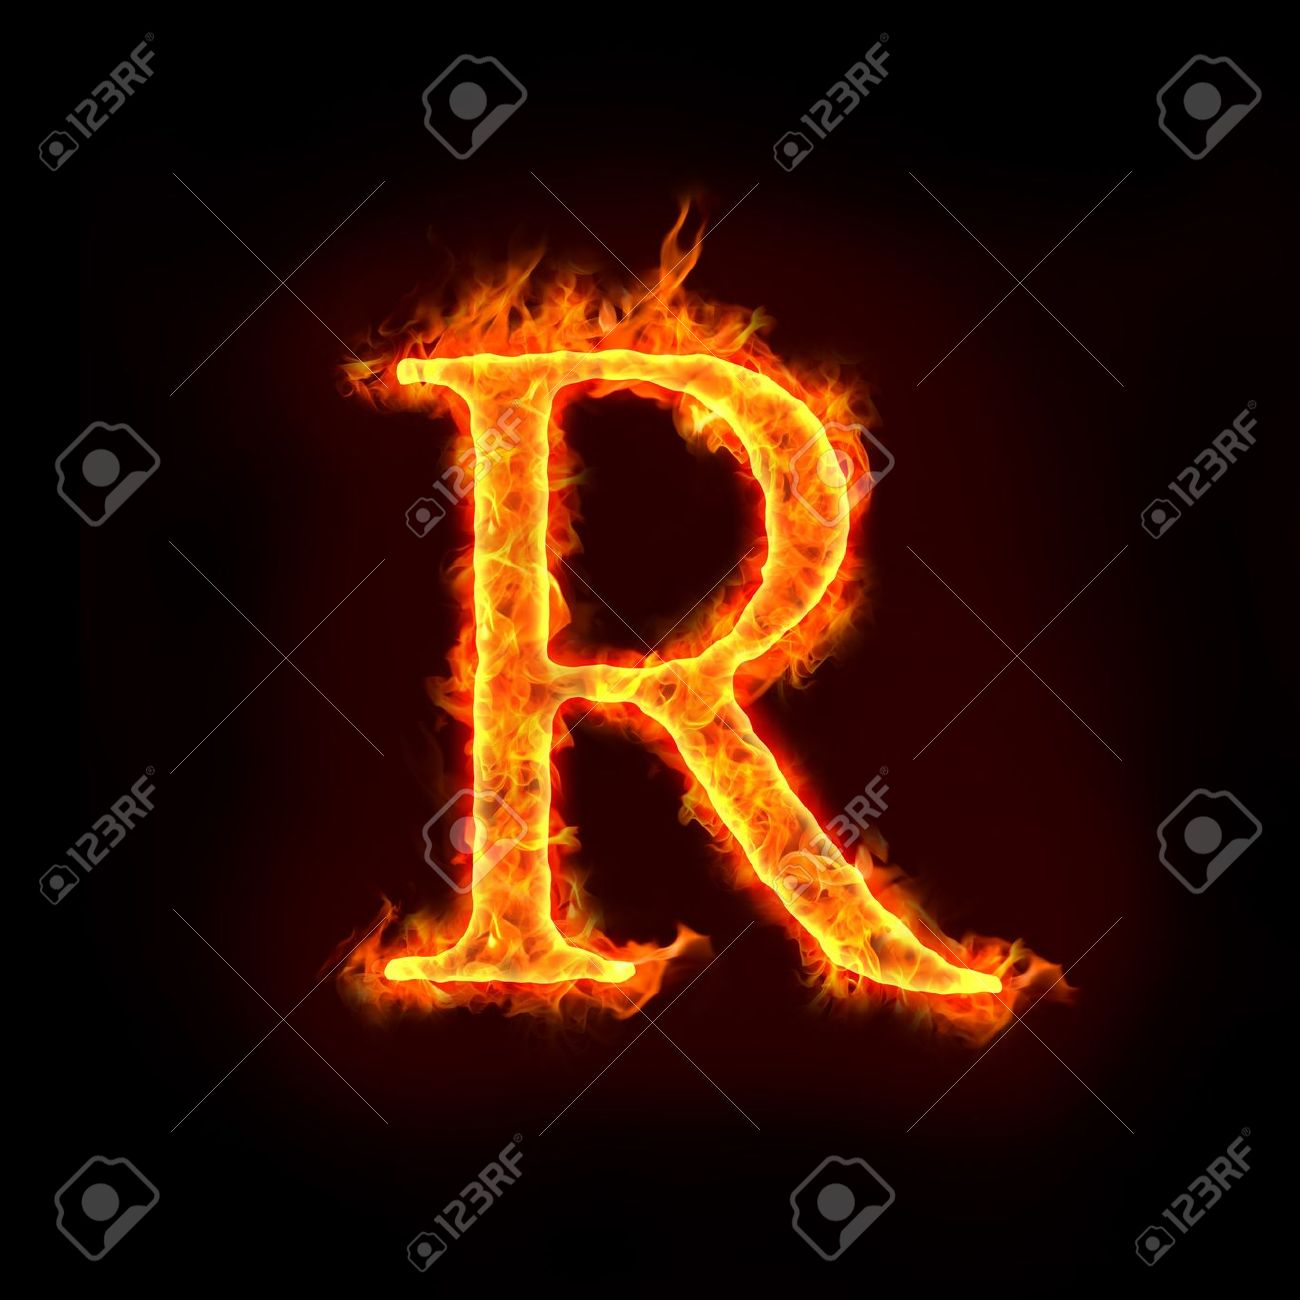 Fire alphabets in flame letter r stock photo picture and royalty fire alphabets in flame letter r stock photo 10232894 thecheapjerseys Image collections